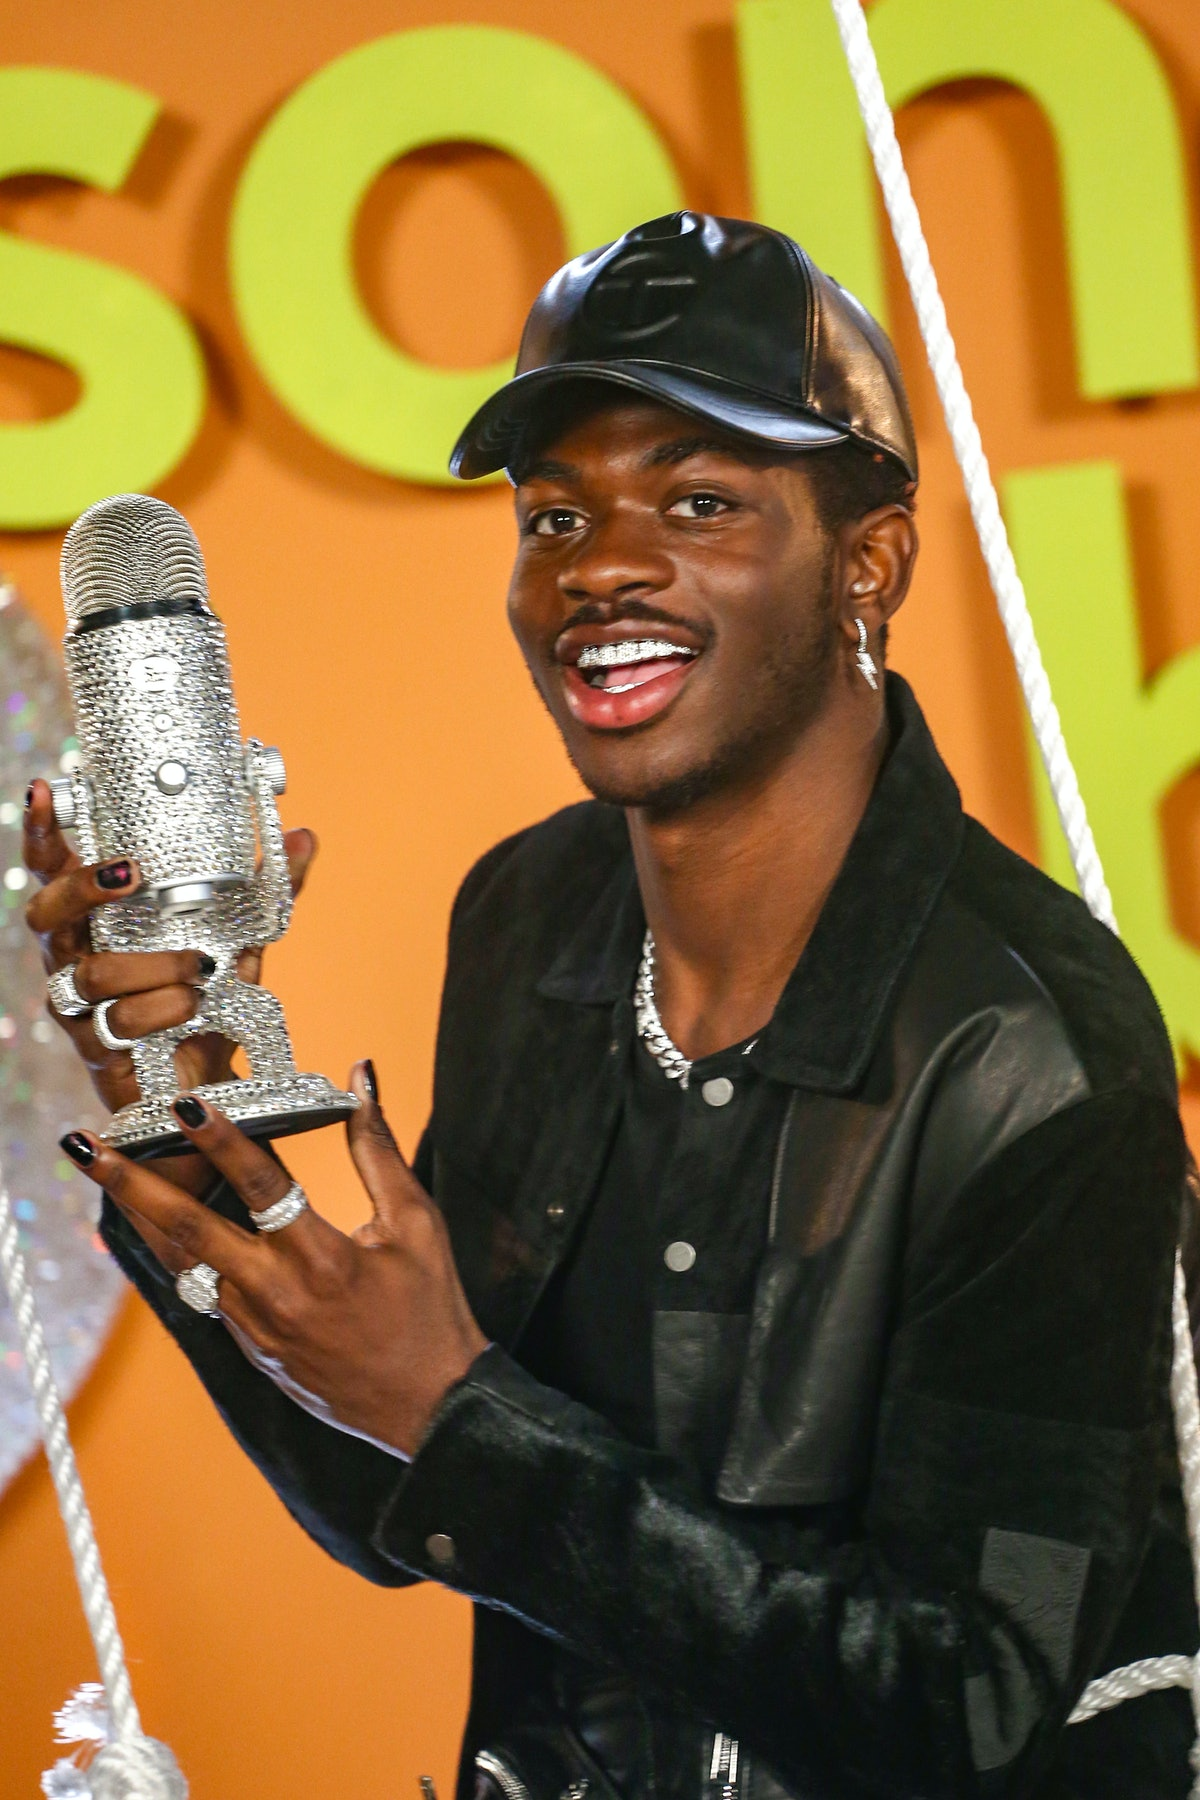 LOS ANGELES, CALIFORNIA - MARCH 13: Lil Nas X poses as Logitech Celebrates Creators With First-Ever Song Breaker Awards at Hubble Studio on March 13, 2021 in Los Angeles, California. (Photo by Tommaso Boddi/Getty Images for Logitech)